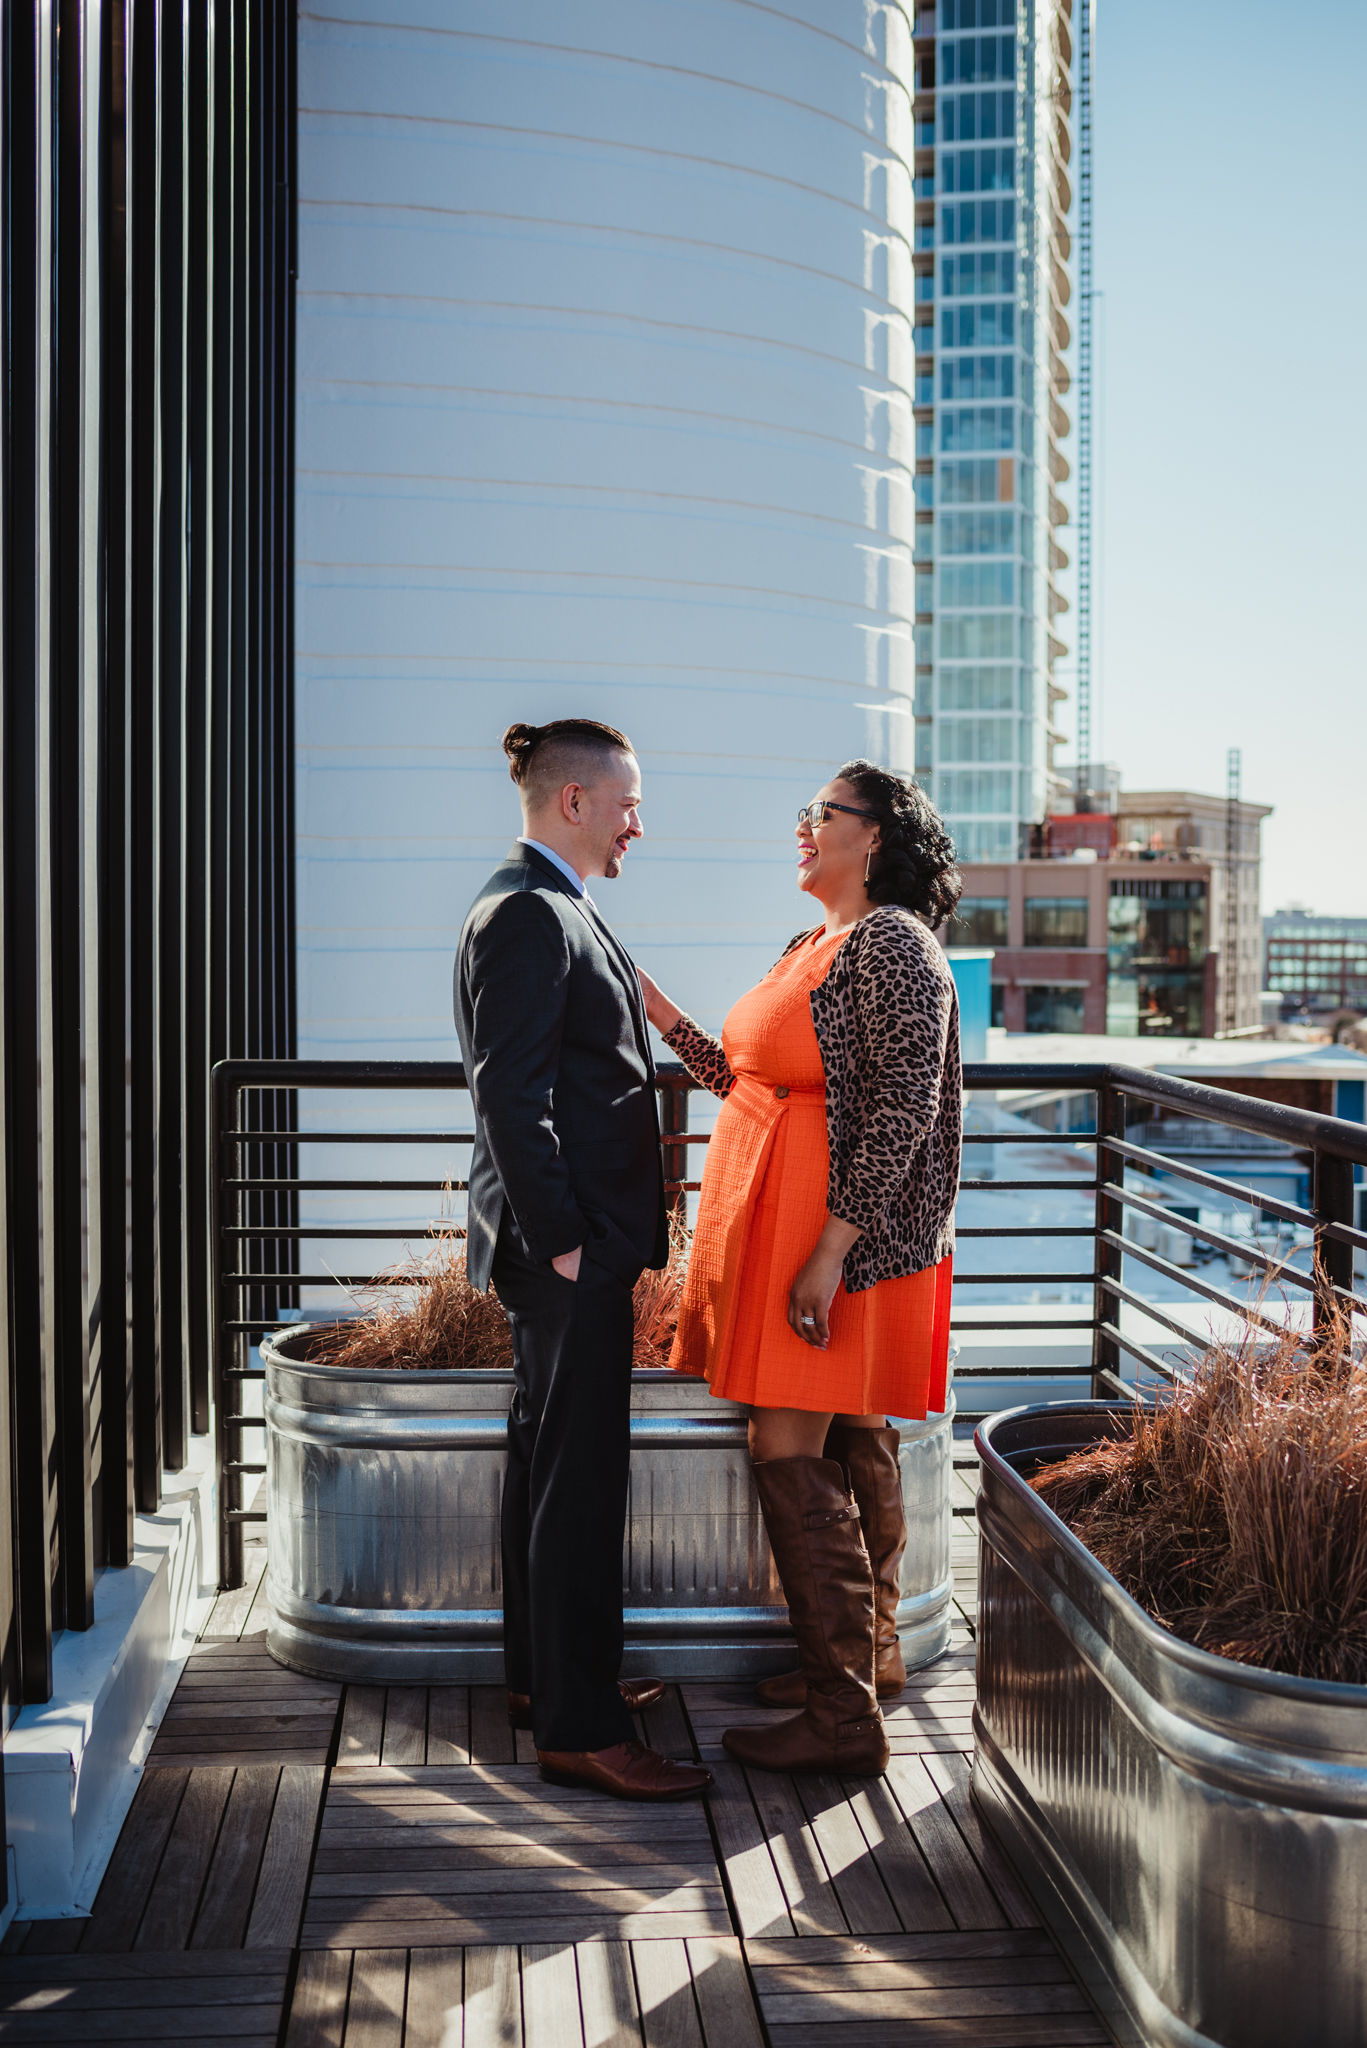 The husband and wife pose together for Rose Trail Images on the rooftop of the Durham Hotel in Durham, North Carolina.